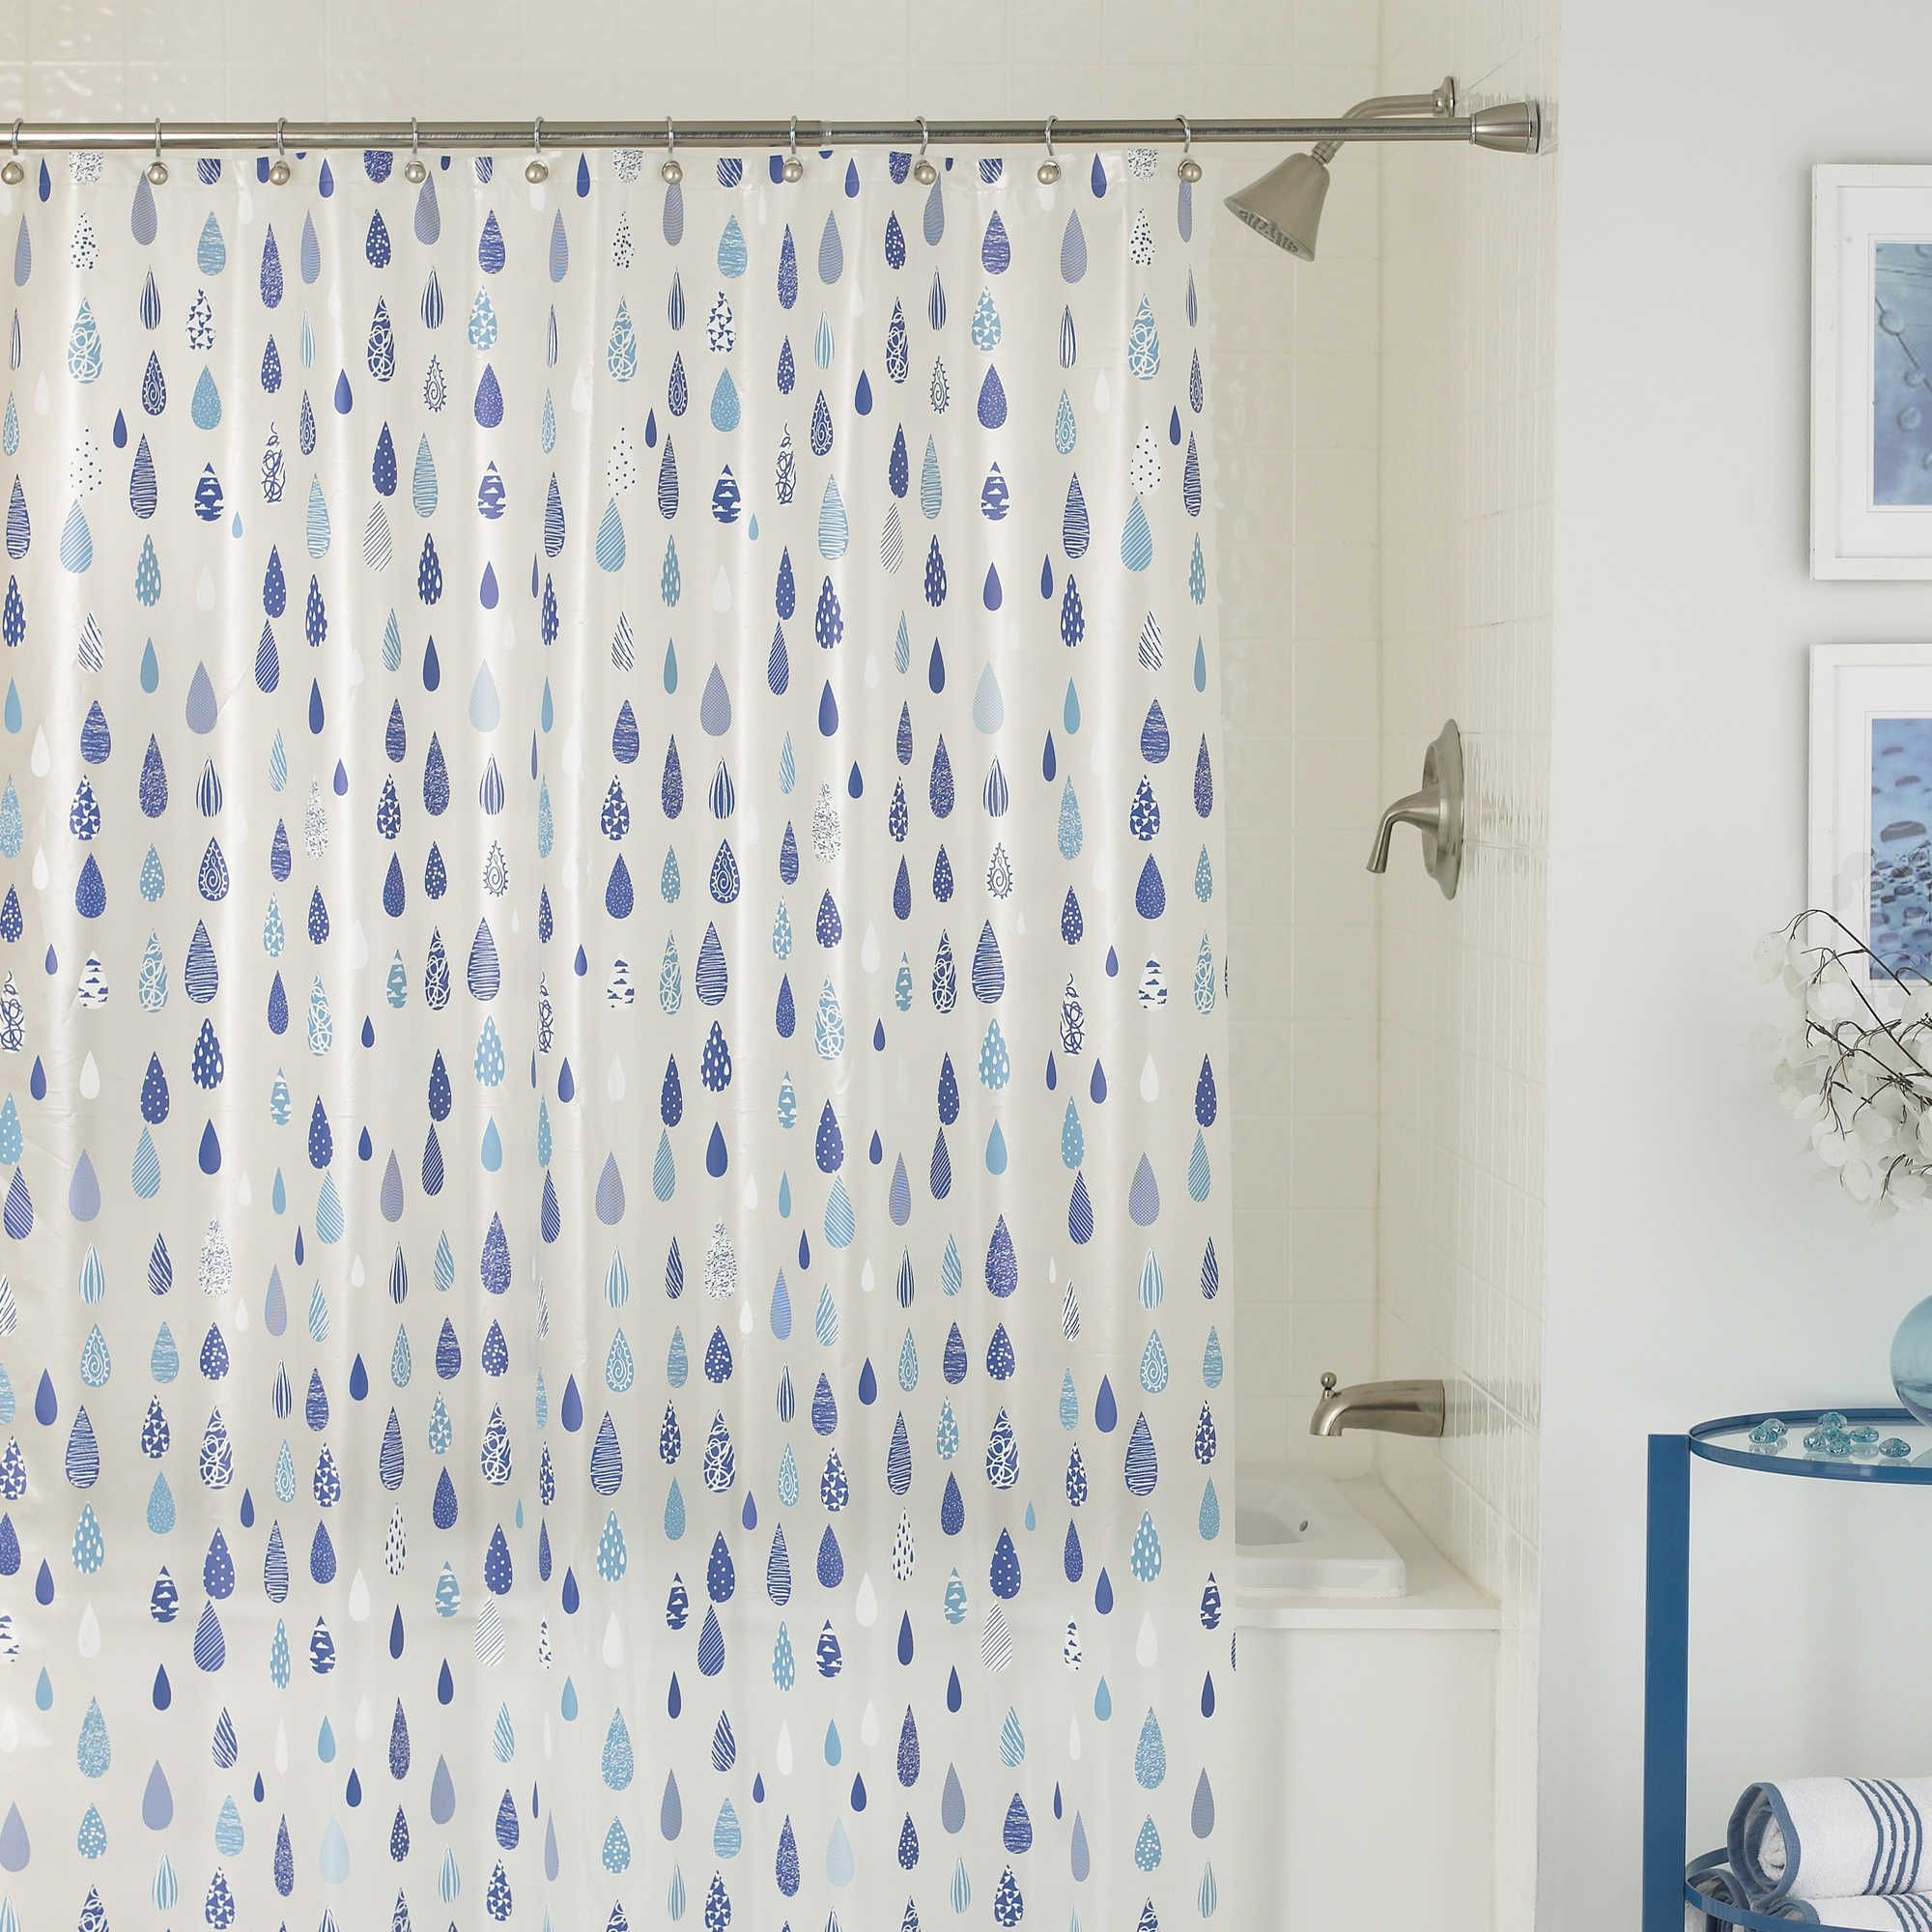 April showers inch x inch shower curtain home pinterest